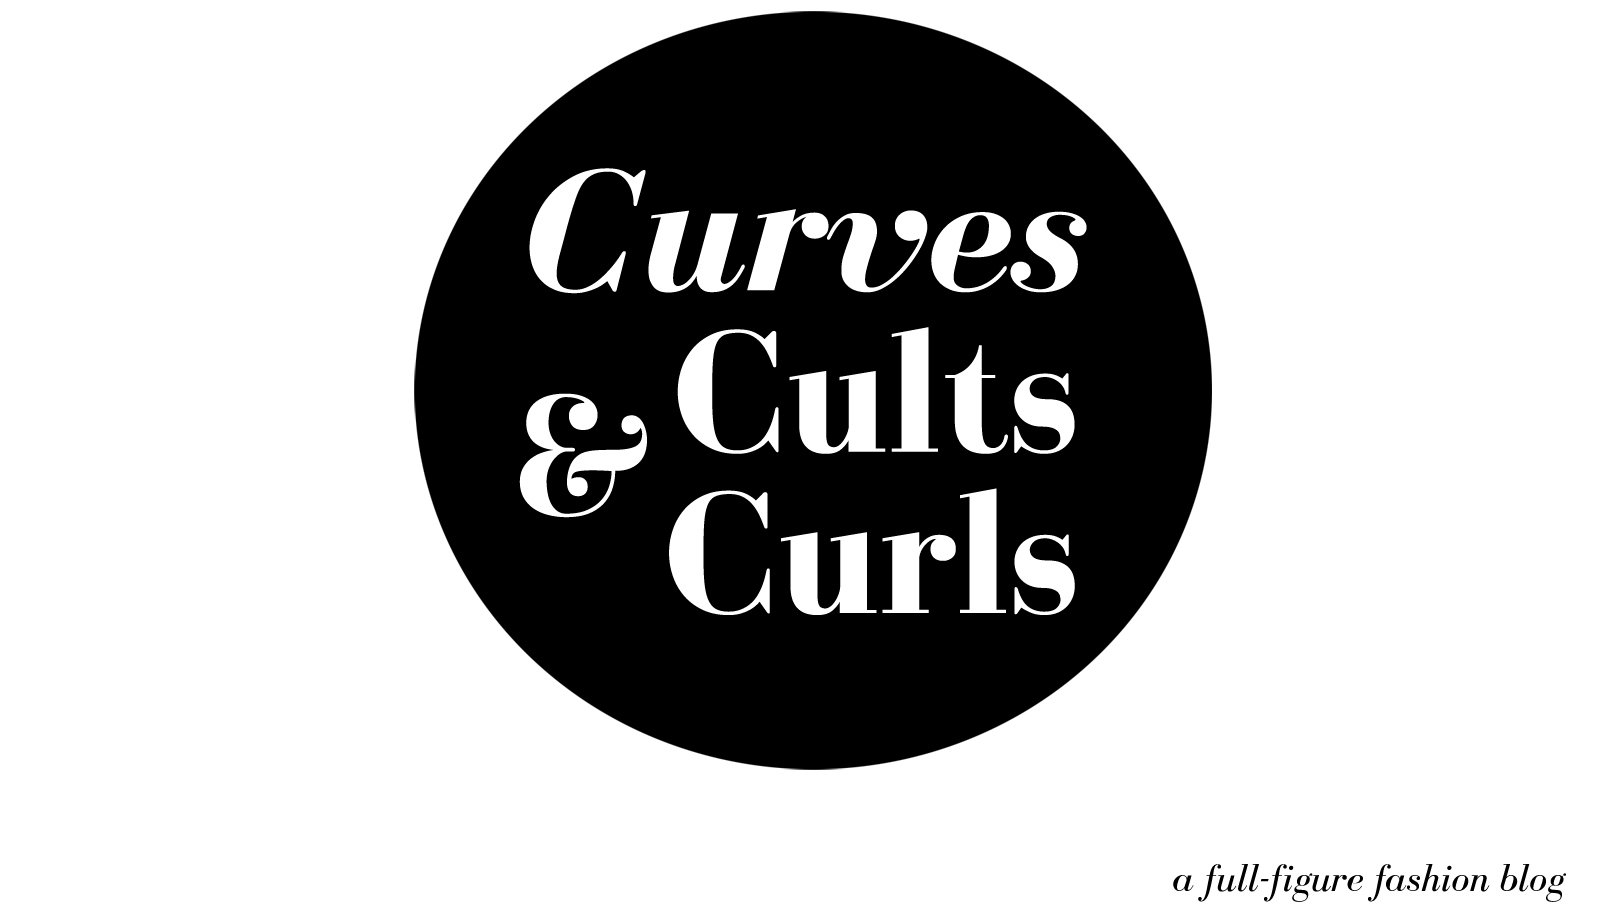 Curves & Cults & Curls